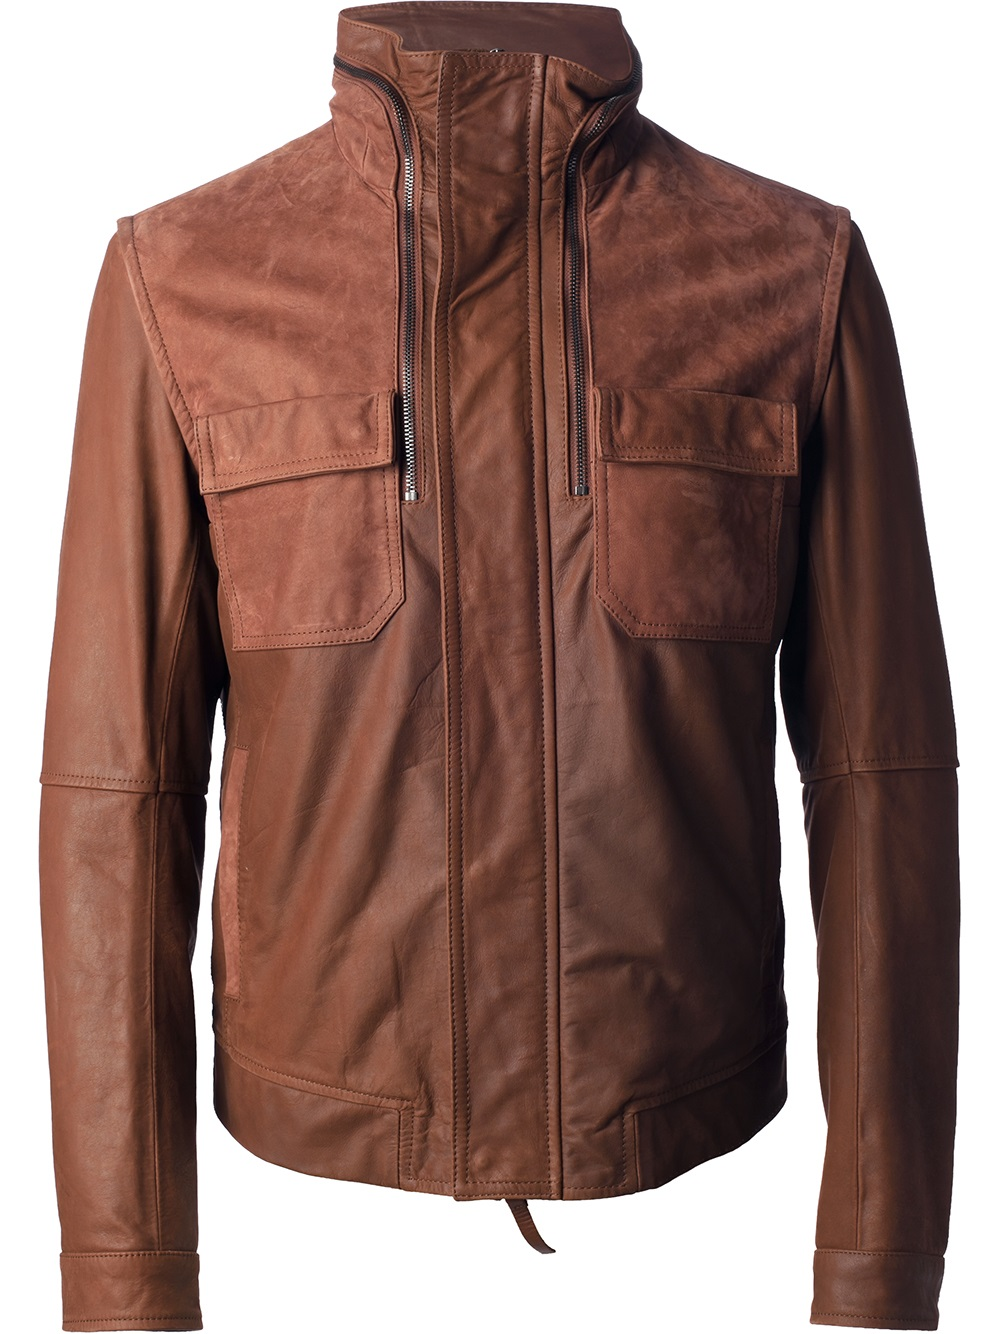 f8f632a30acf Lyst - Emporio Armani Leather Jacket in Brown for Men